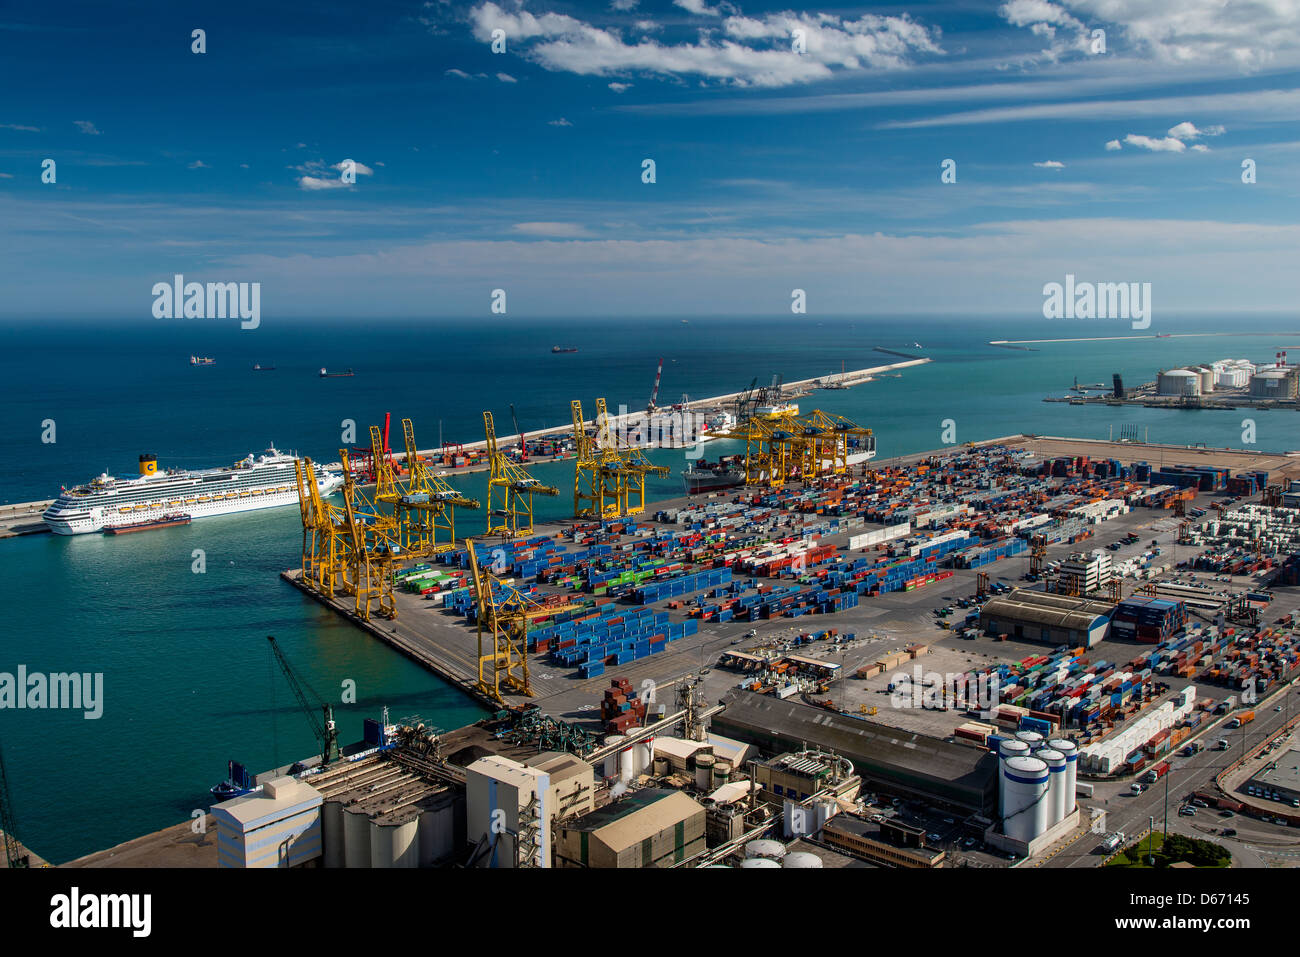 View over the freight harbor from Montjuic, Barcelona, Catalonia, Spain - Stock Image